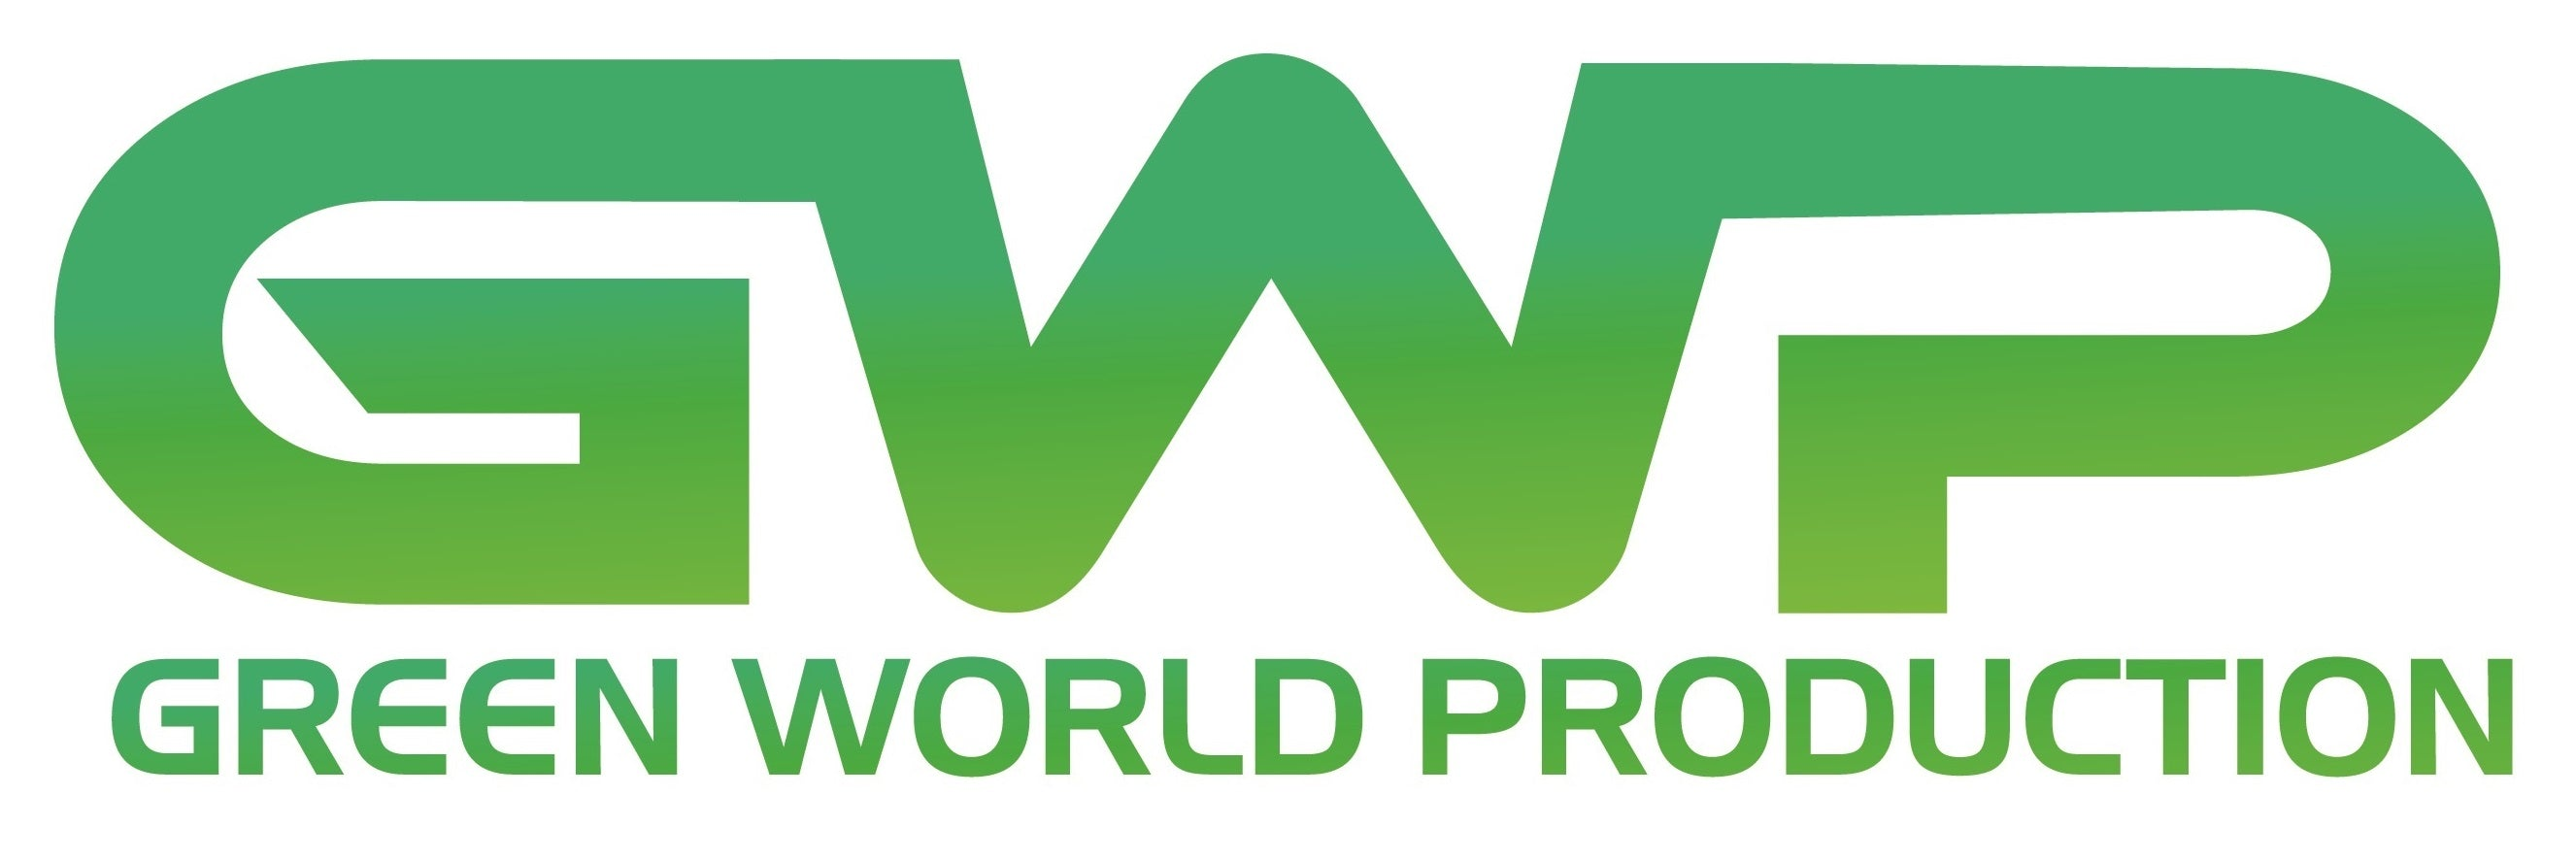 Green World Production